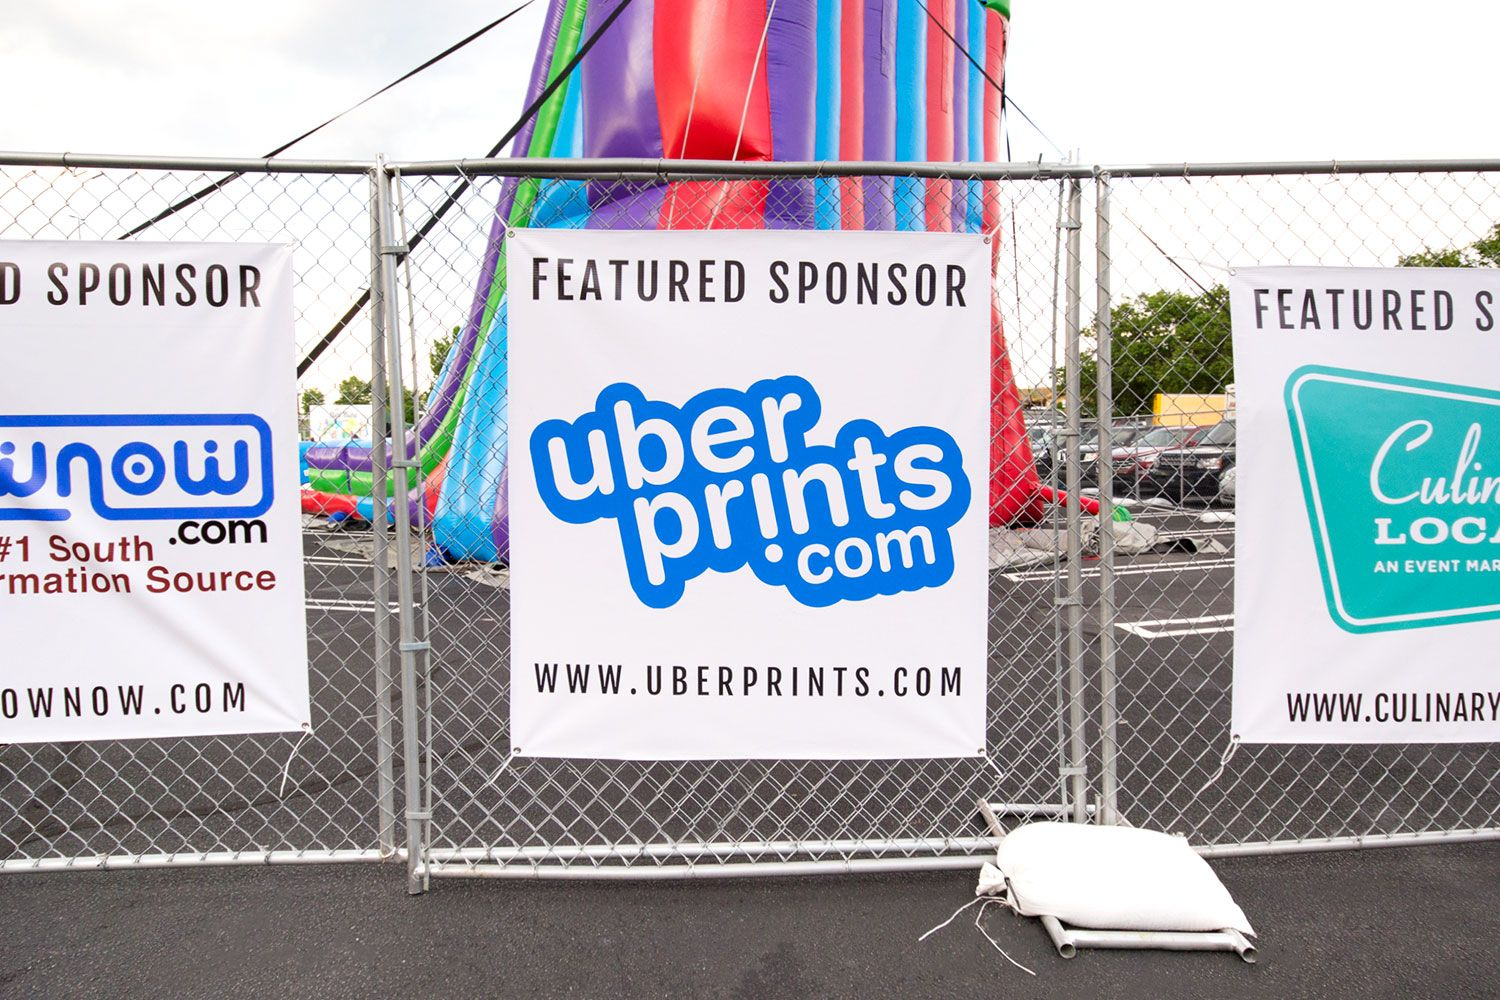 The UberPrints featured sponsor poster outside the International Night Market event.